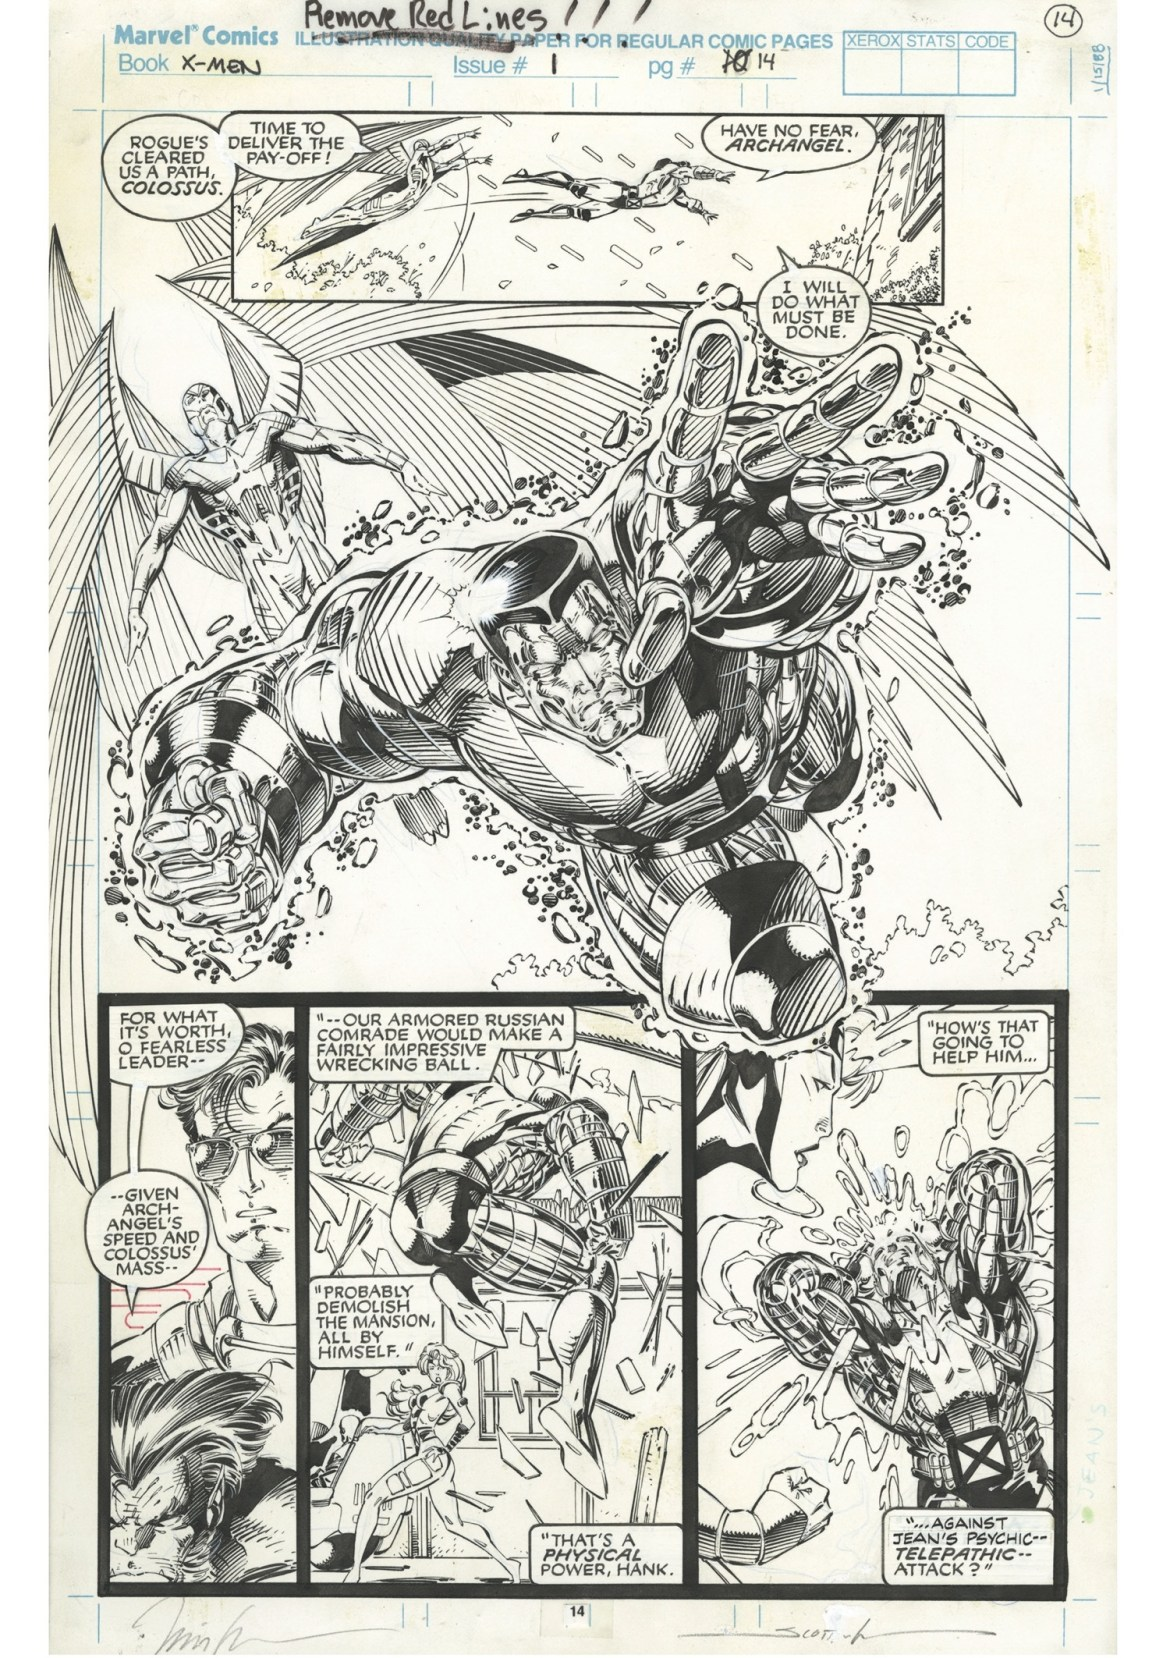 7c8e9b4e-d447-42f3-acb8-b8de4eca1a6c JIM LEE'S X-MEN ARTIST'S EDITION to contain the best selling X-Men #1